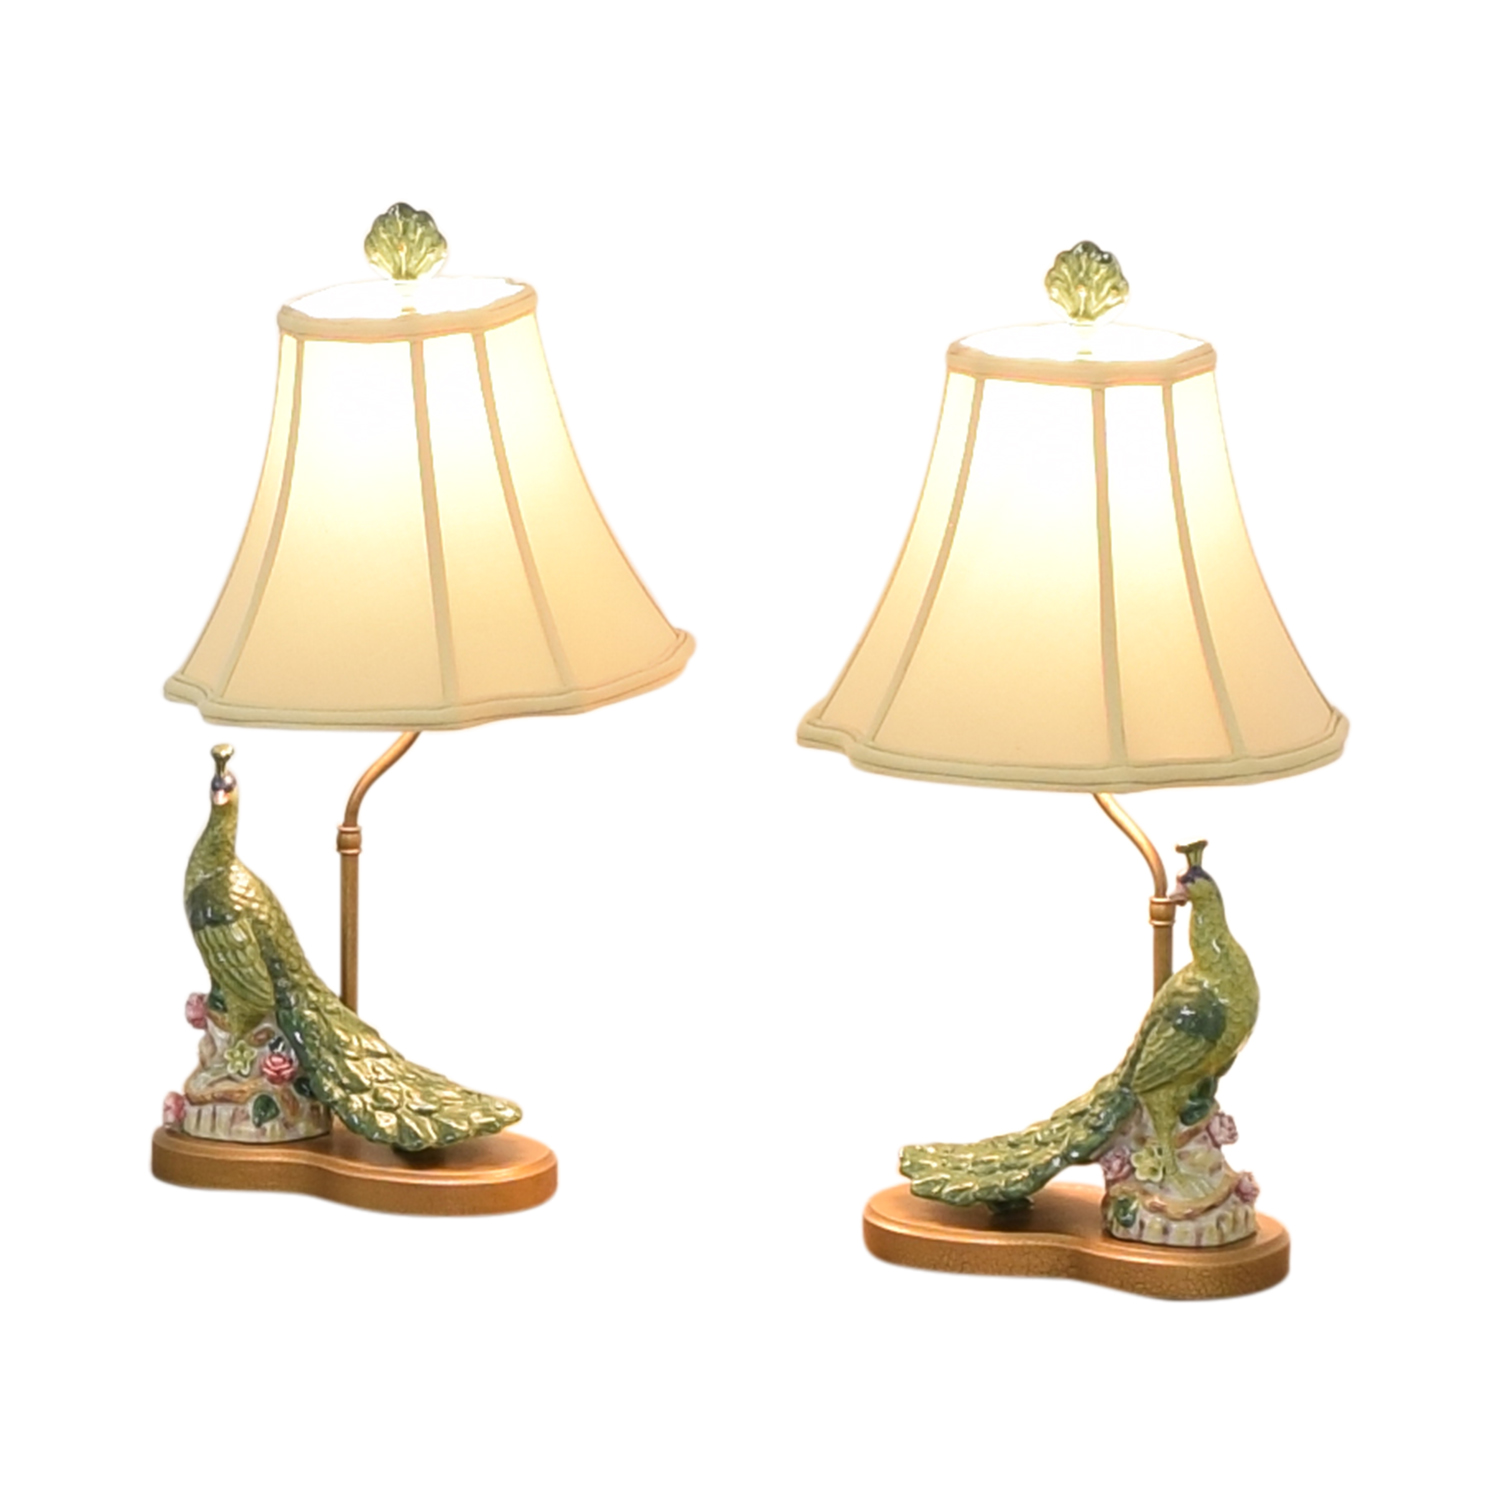 Ethan Allen Decorative Table Lamps sale